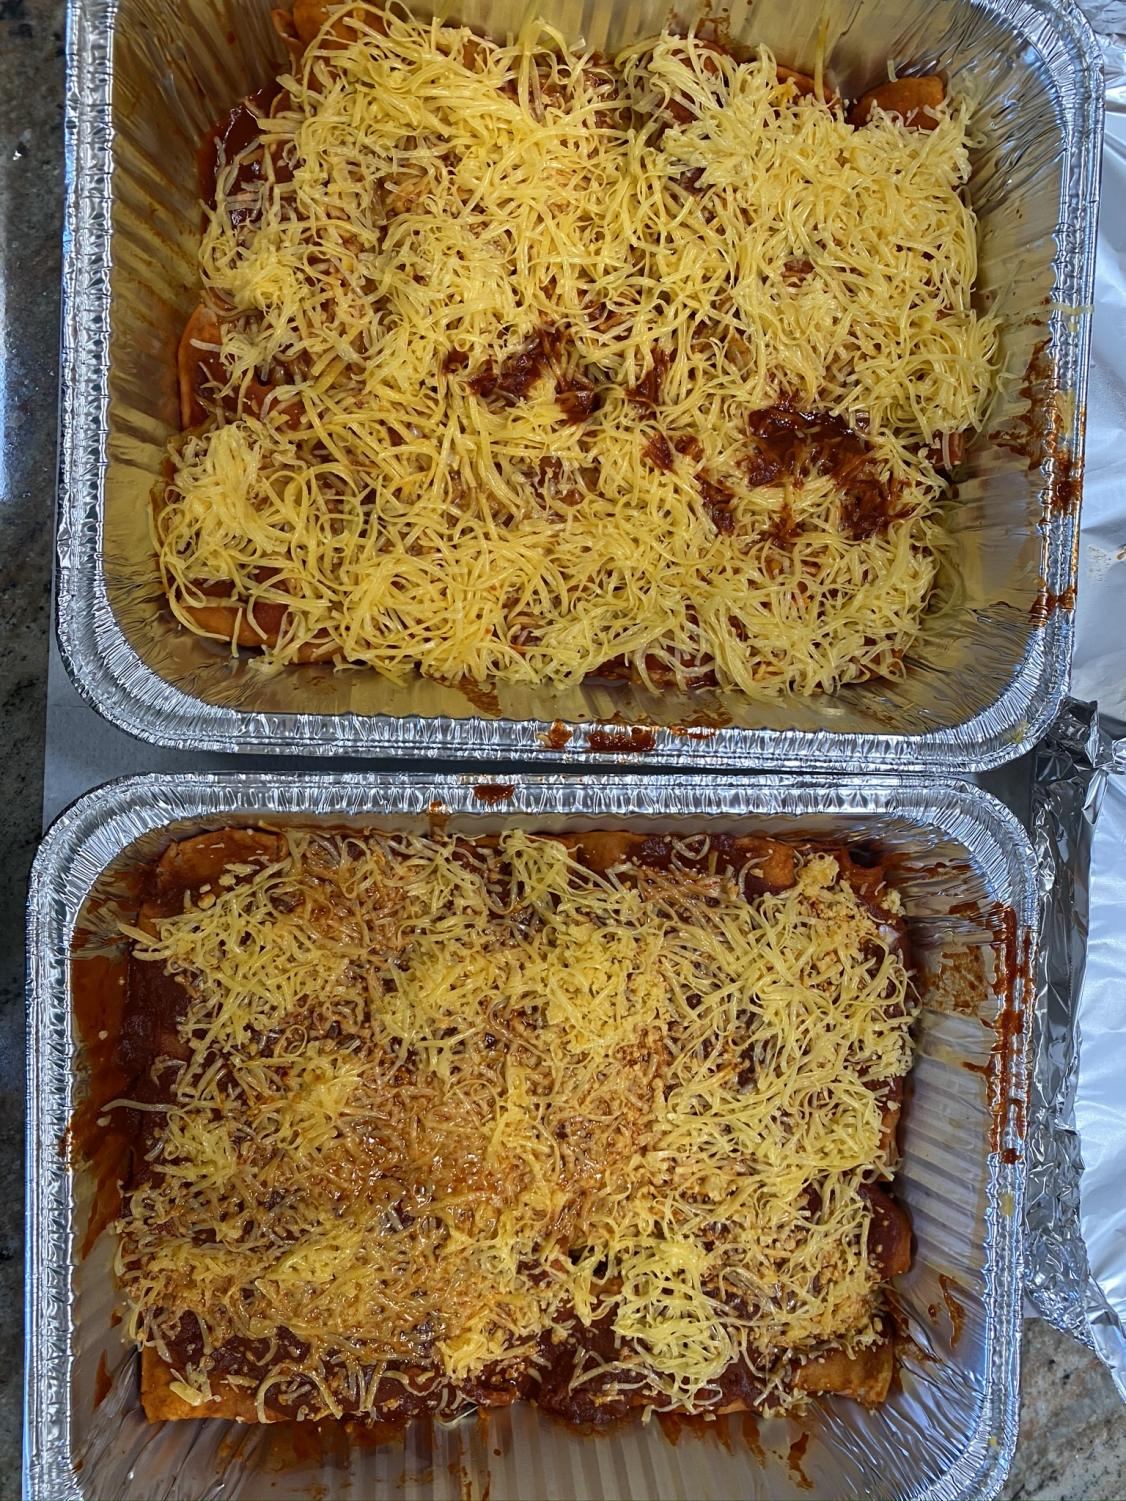 Enchiladas%3A+Make+Your+Own+Comfort+Food%21